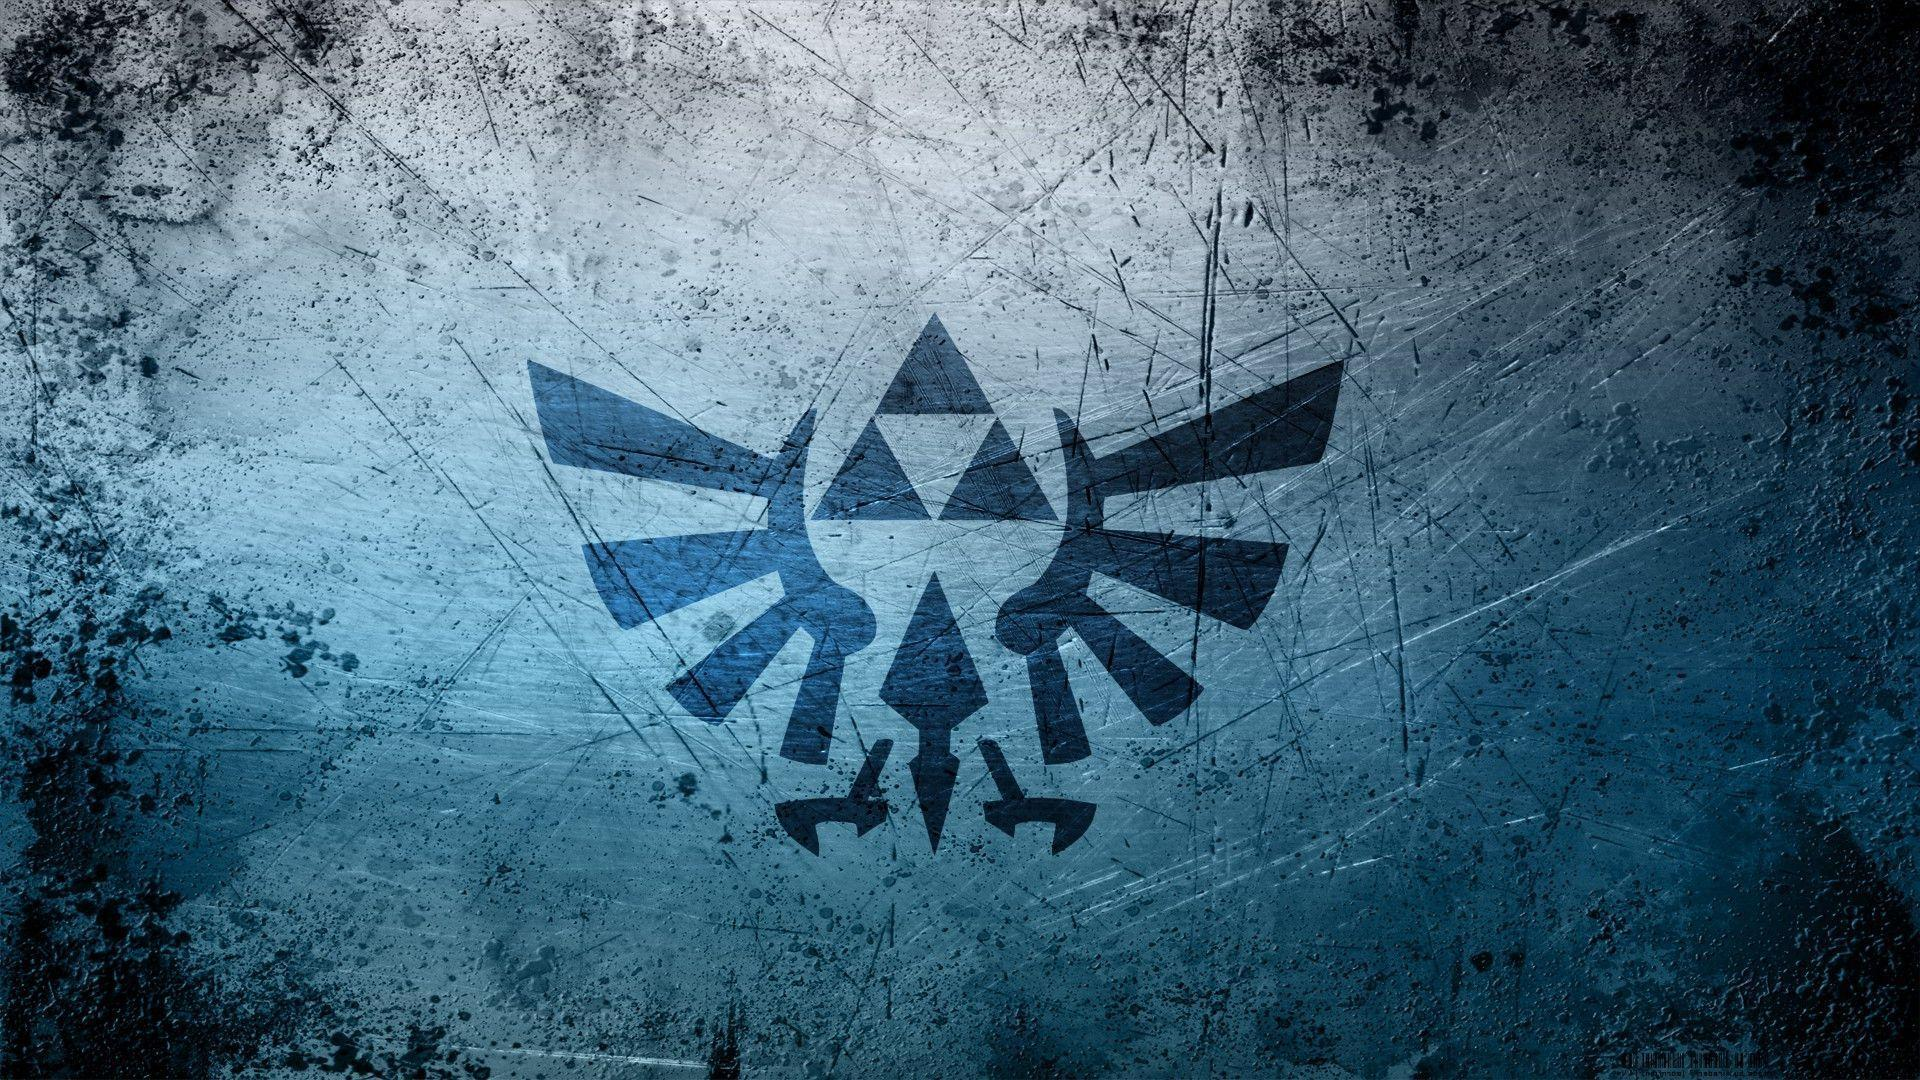 Zelda Wallpapers HD 1920x1080 Wallpaper Cave